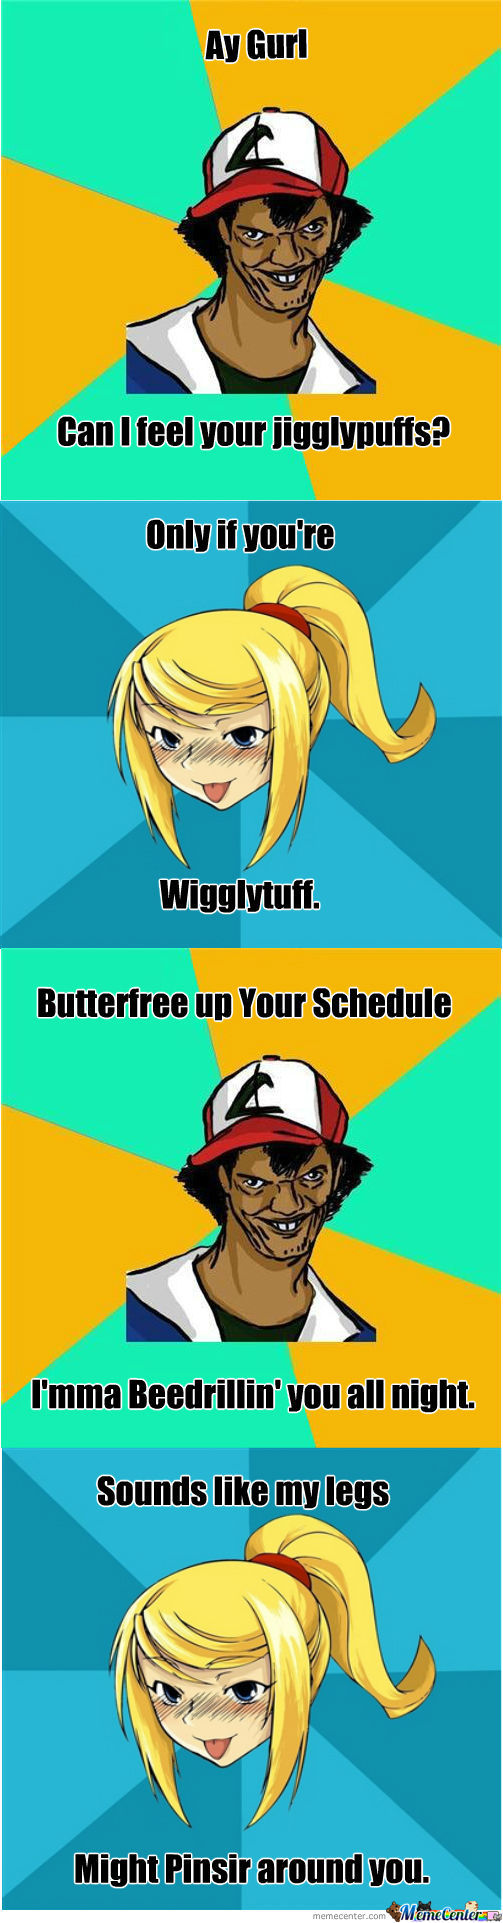 dat ash meets horny samus_o_477043 horny samus memes best collection of funny horny samus pictures